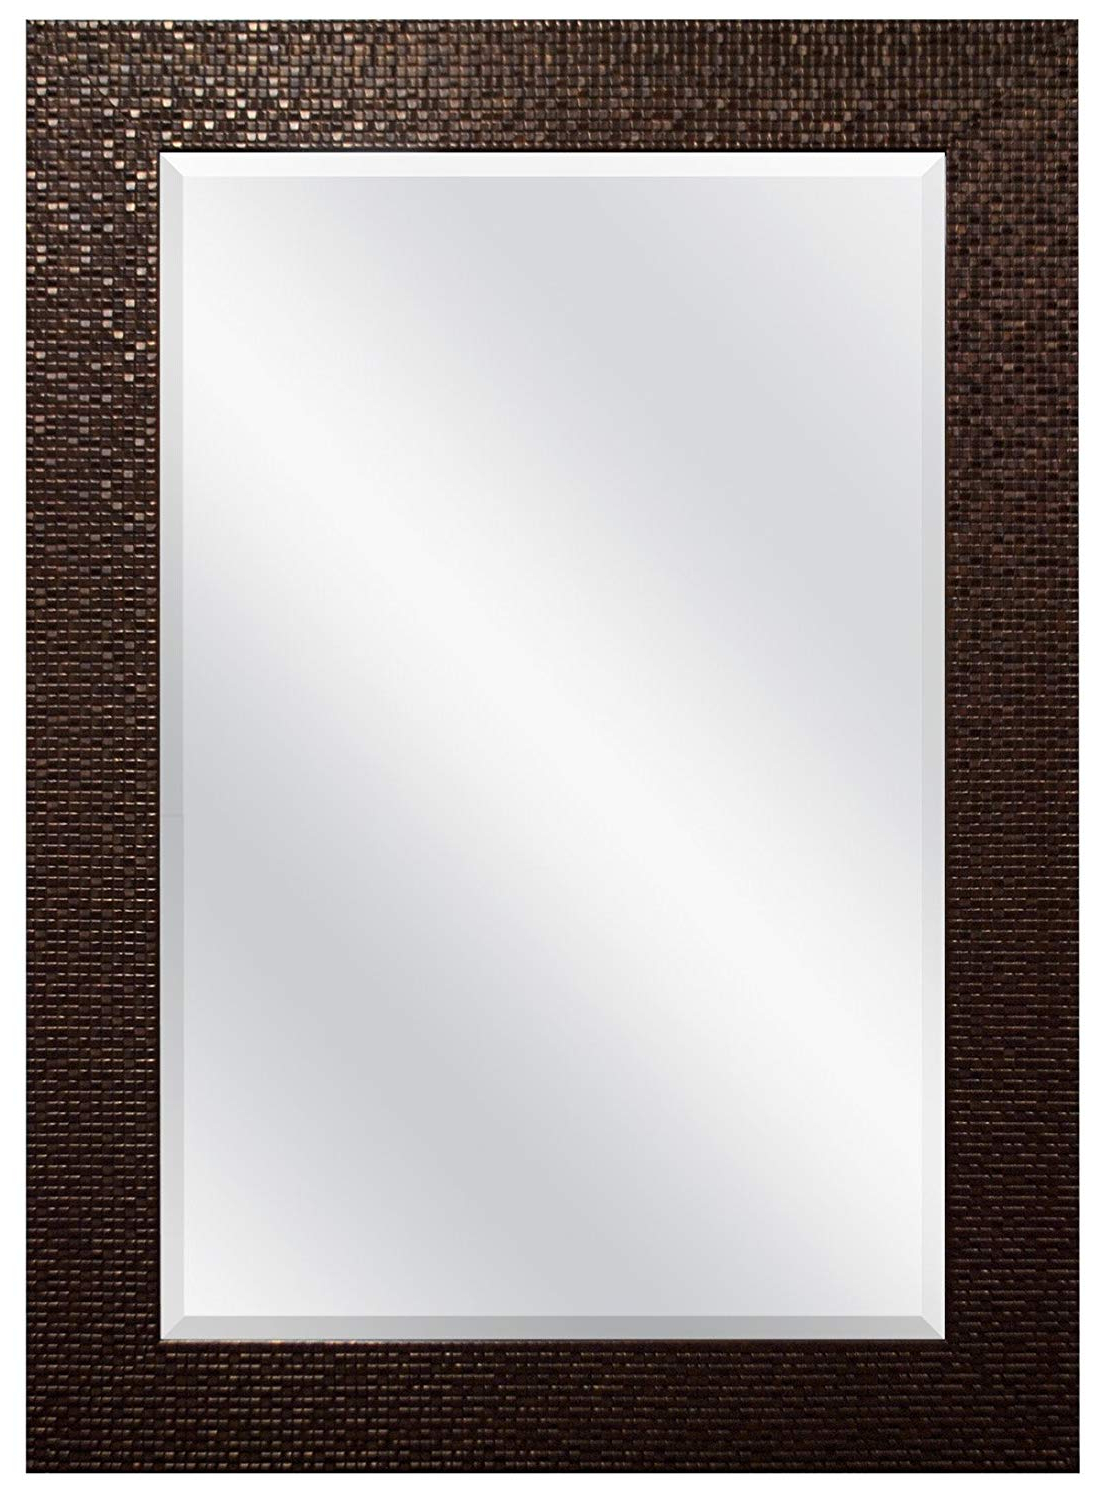 Mcs 24x36 Inch Embossed Tile Wall Mirror, 32x44 Inch Overall Size, Bronze Pertaining To Newest Grid Accent Mirrors (View 14 of 20)